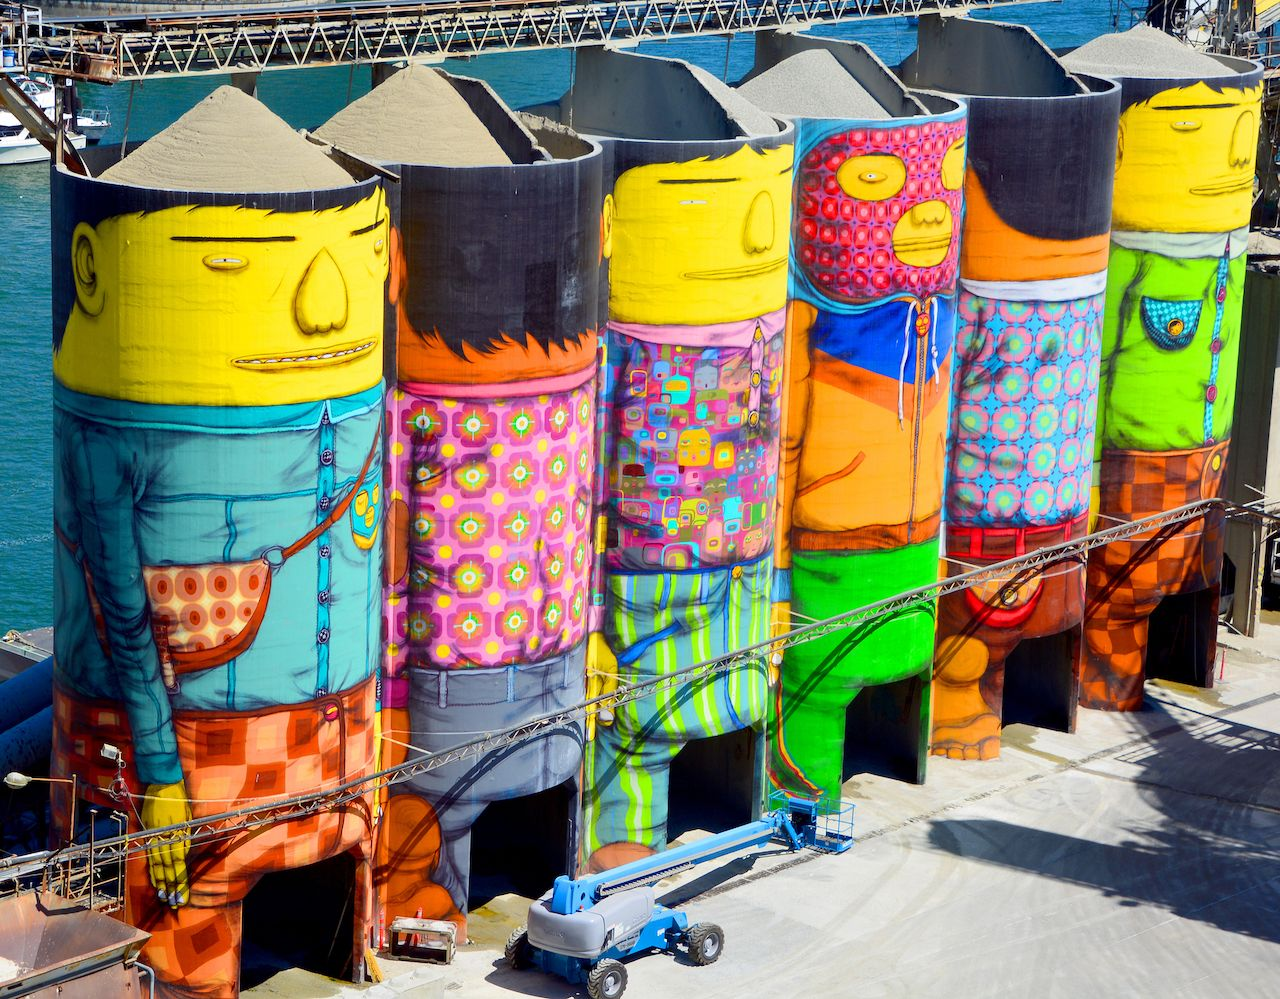 6 concrete silos transformed by two famous Brazilian street artists Os Gemeos, Vancouver